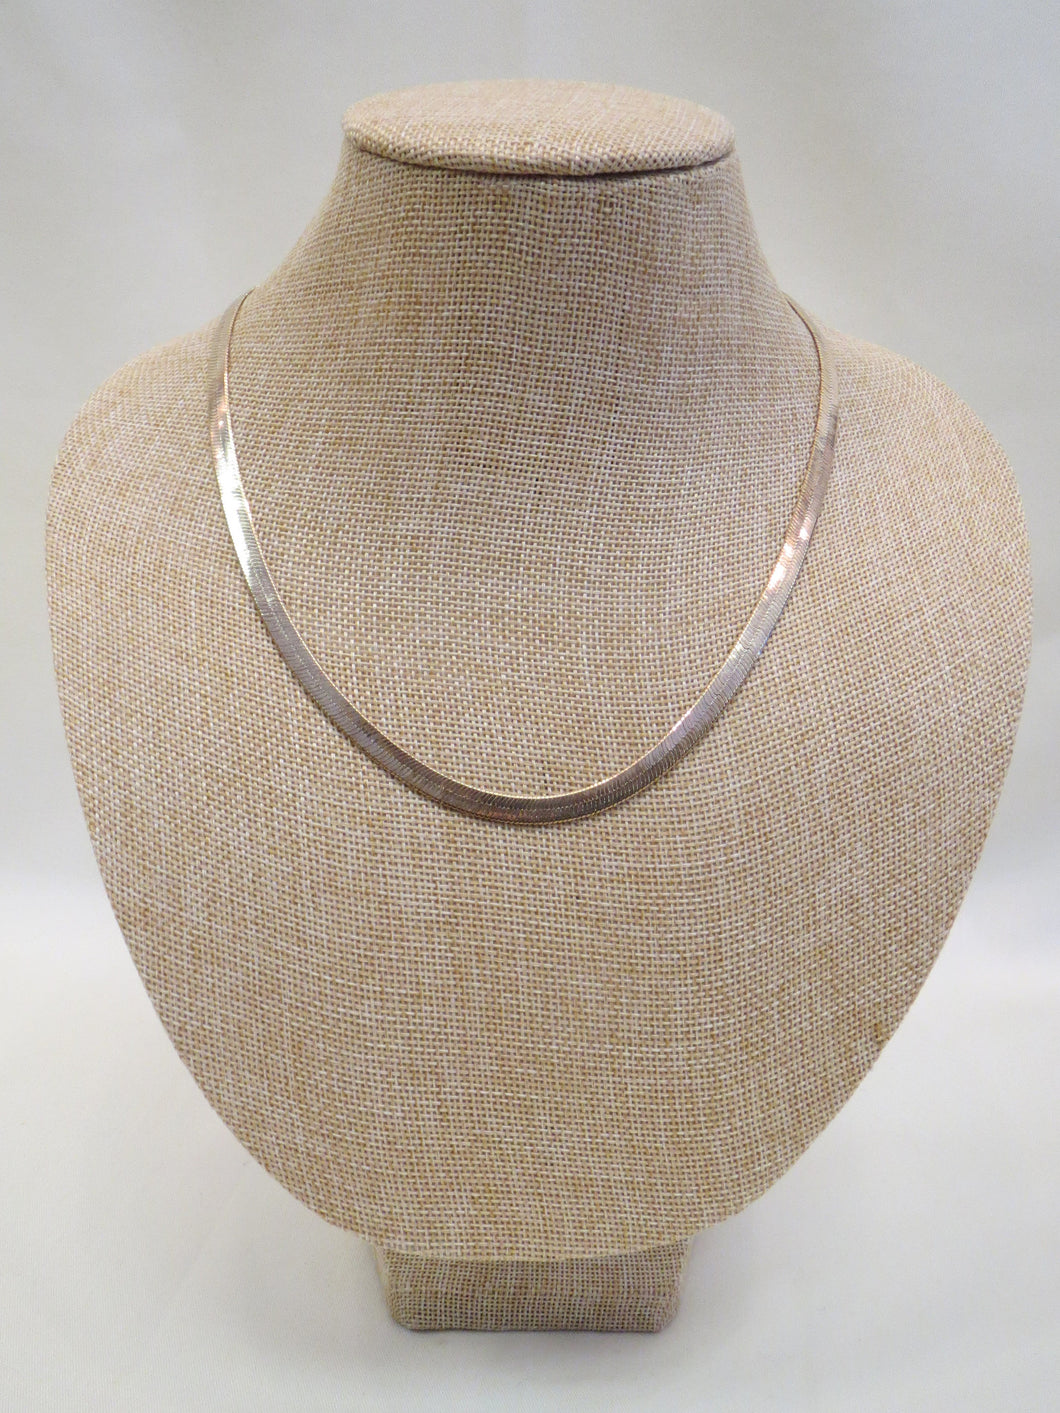 ADO | Gold Flat Chain Necklace Thick - All Decd Out